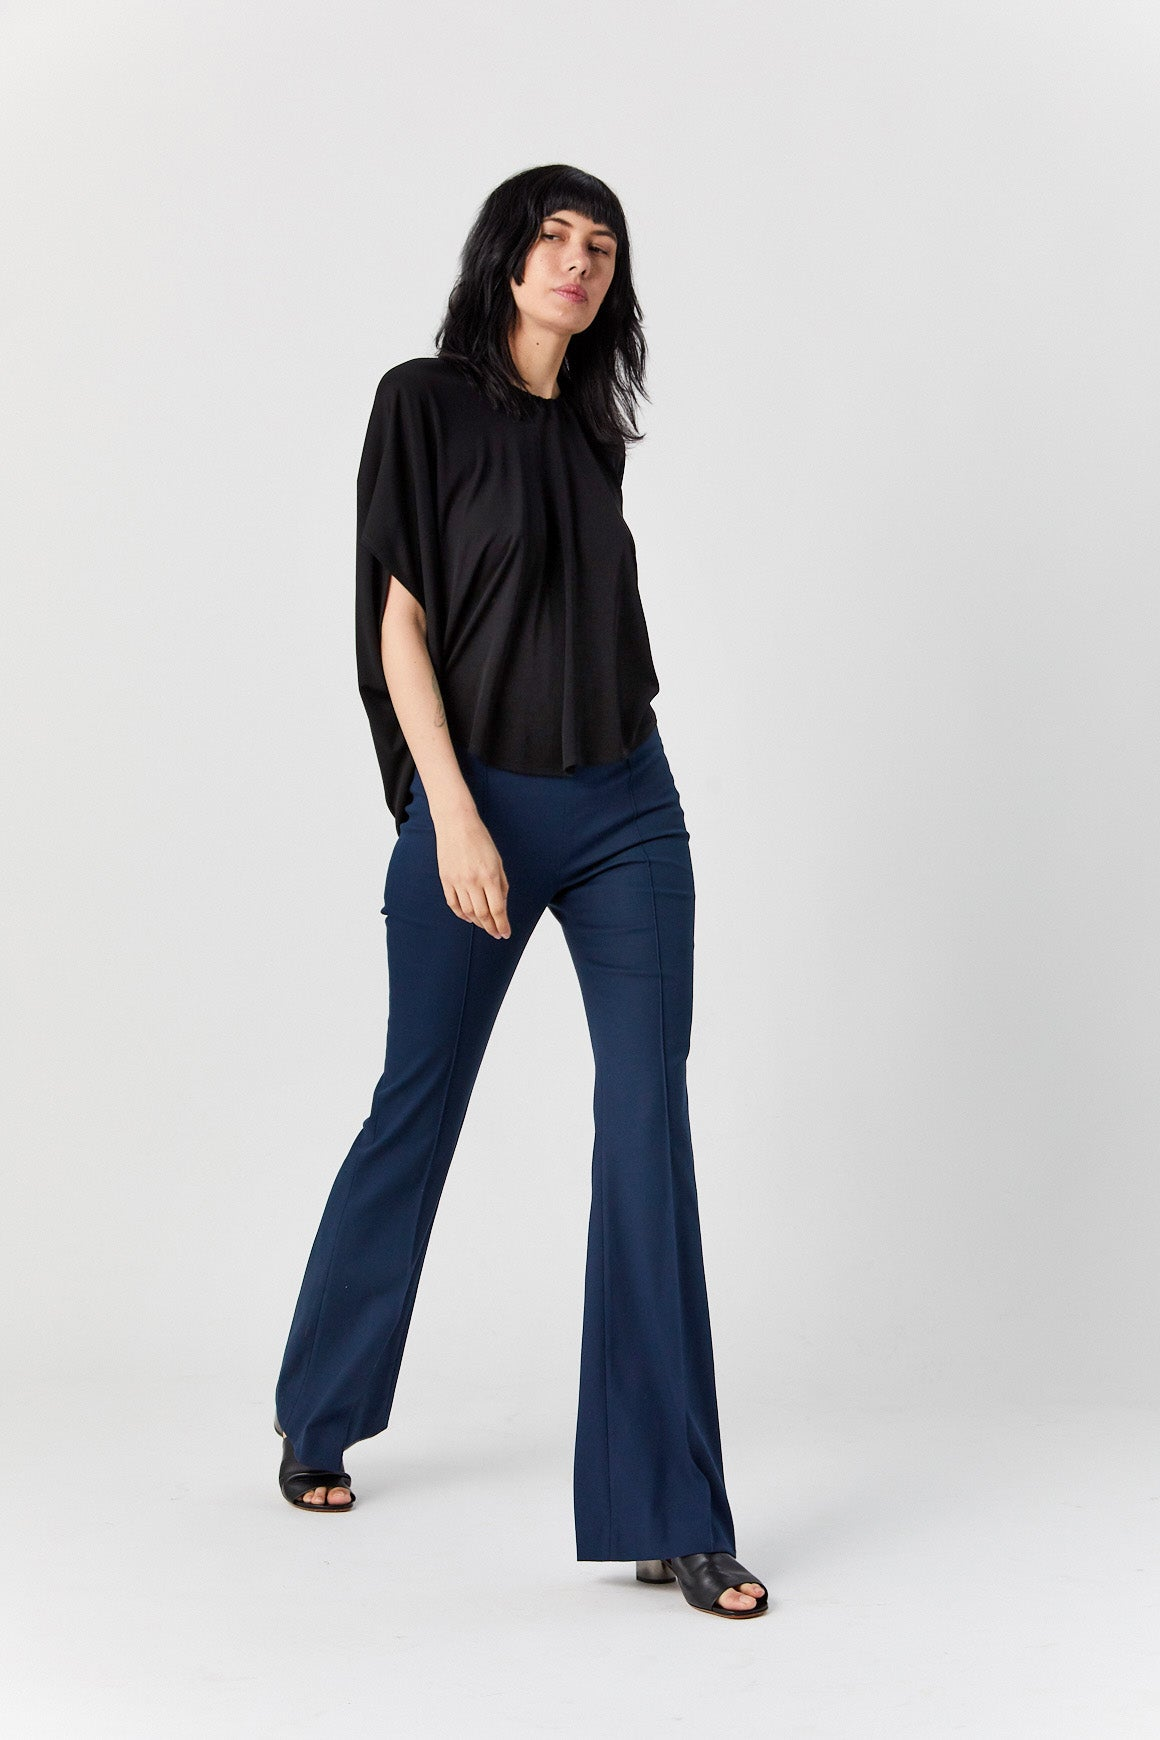 ROSETTA GETTY - Pintuck Flared Pant, Navy